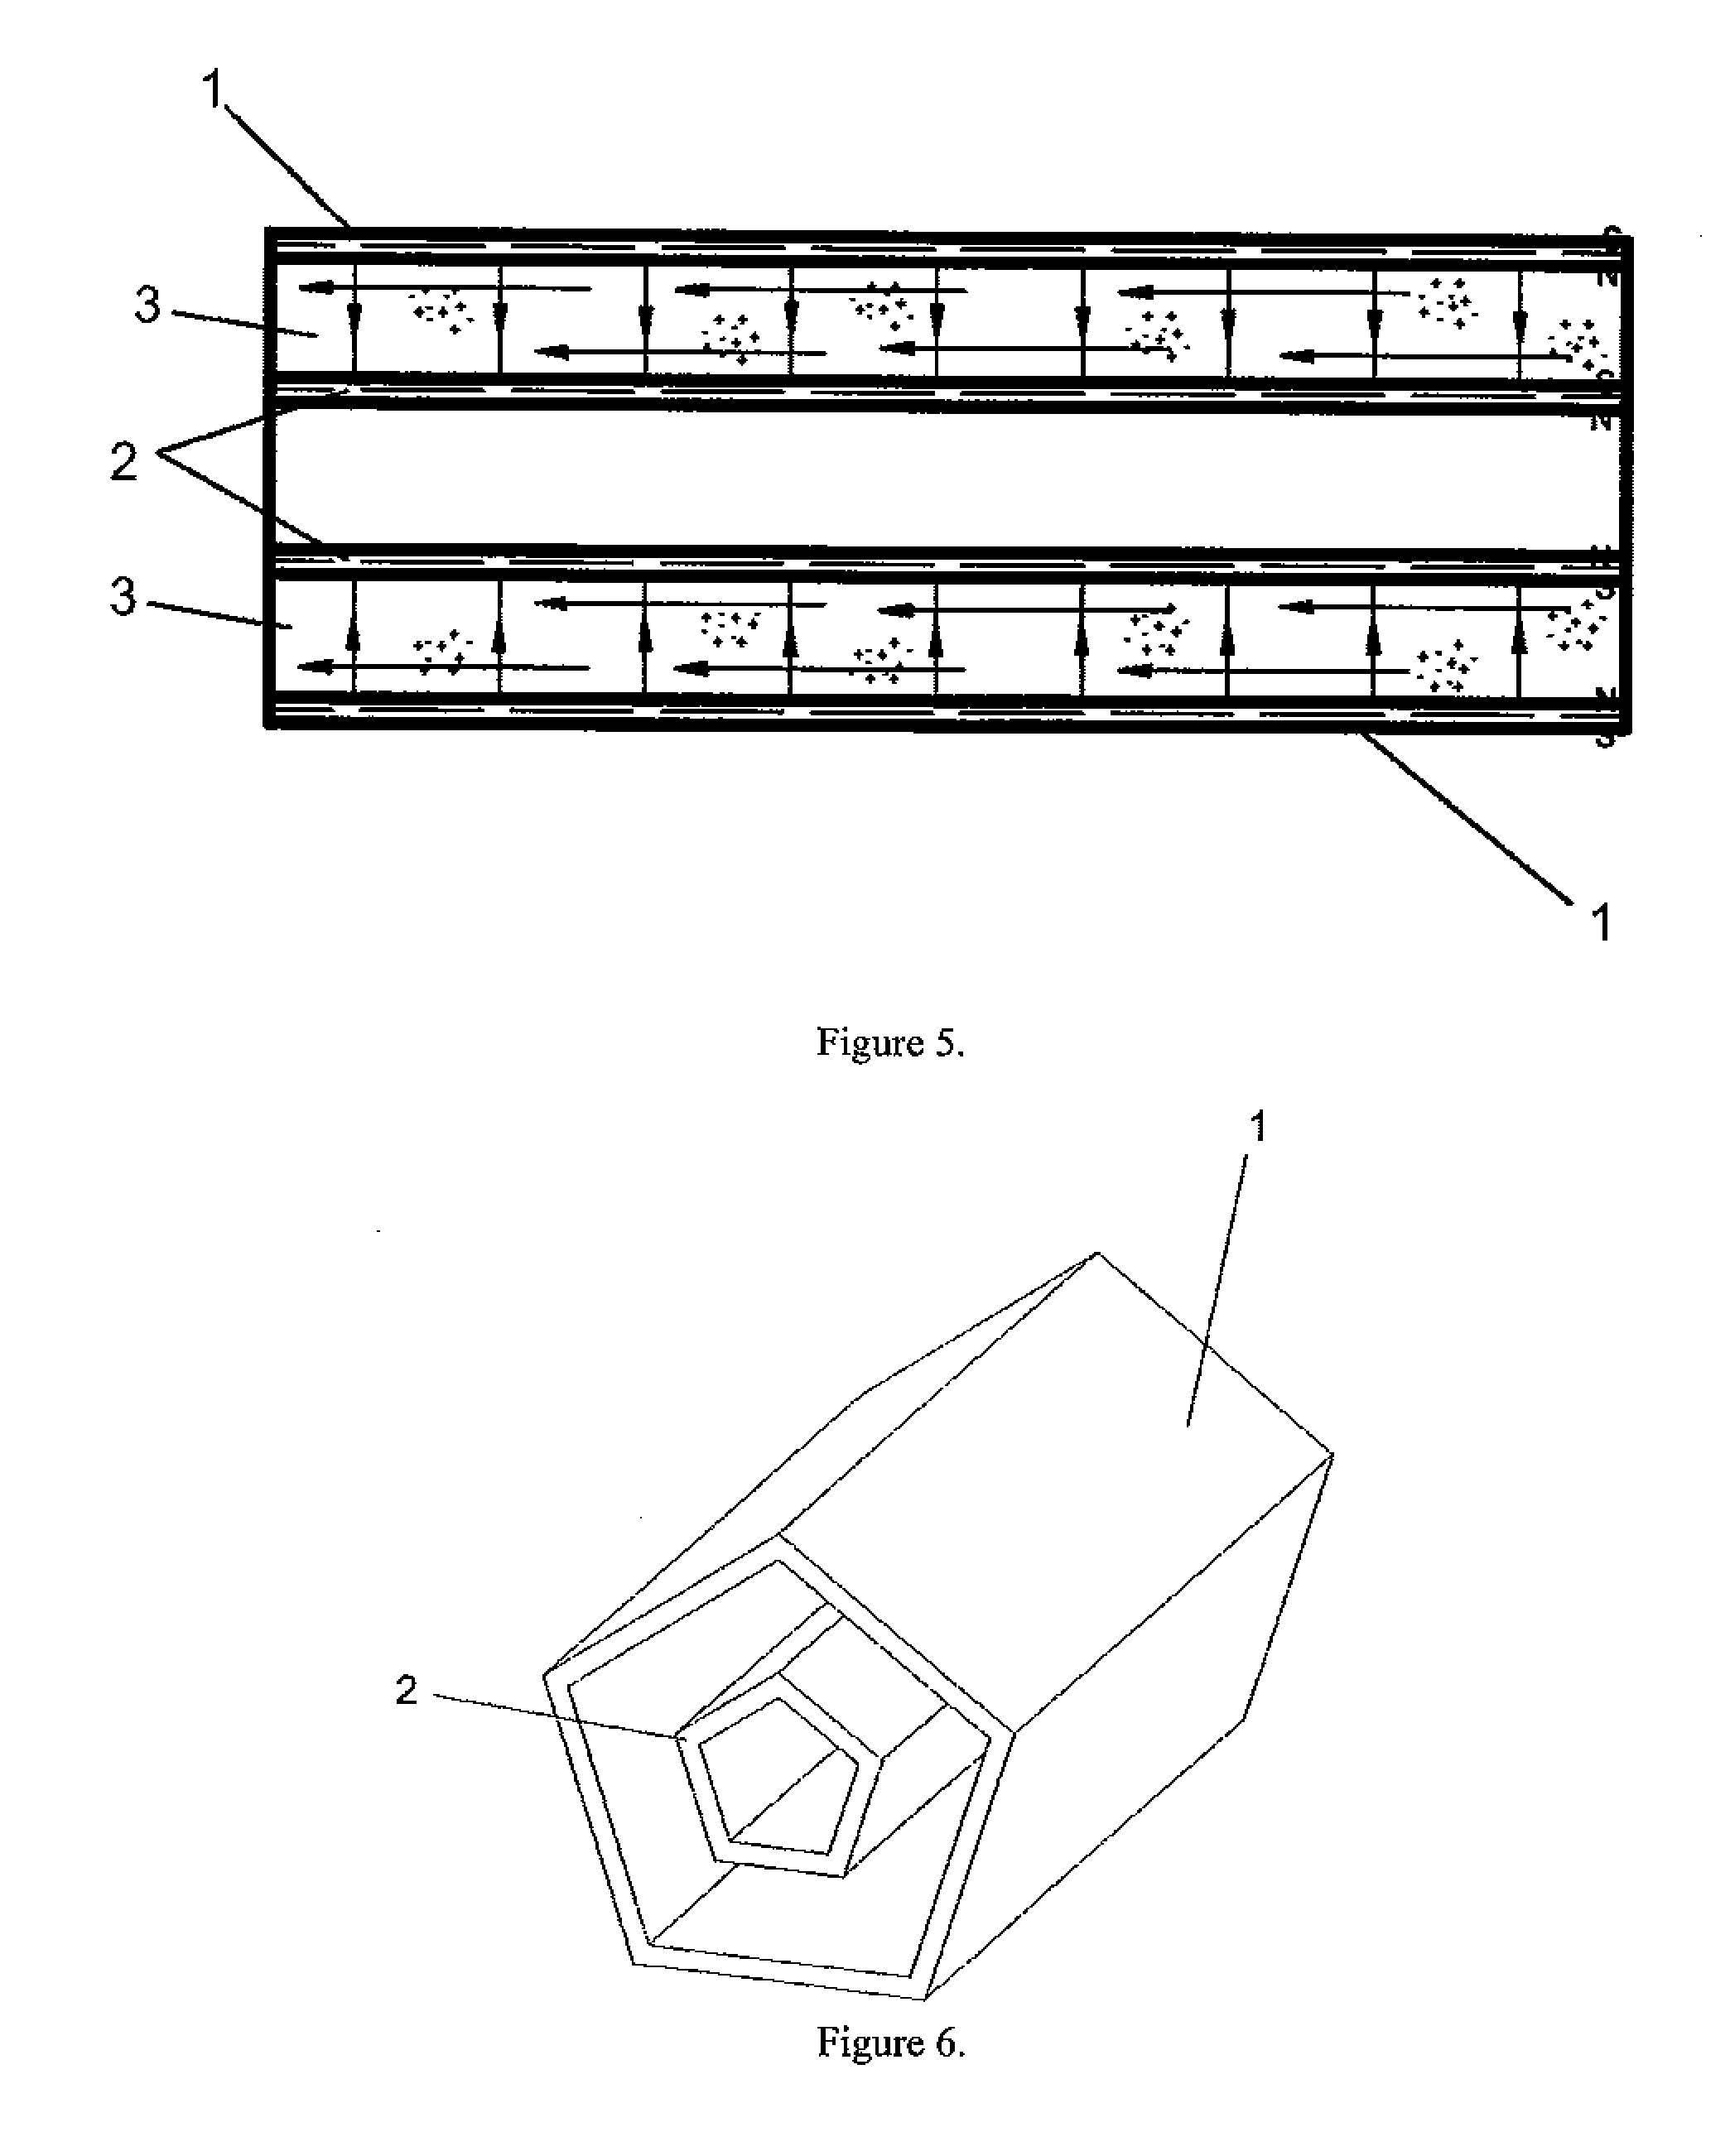 Patent US Desalination device using selective